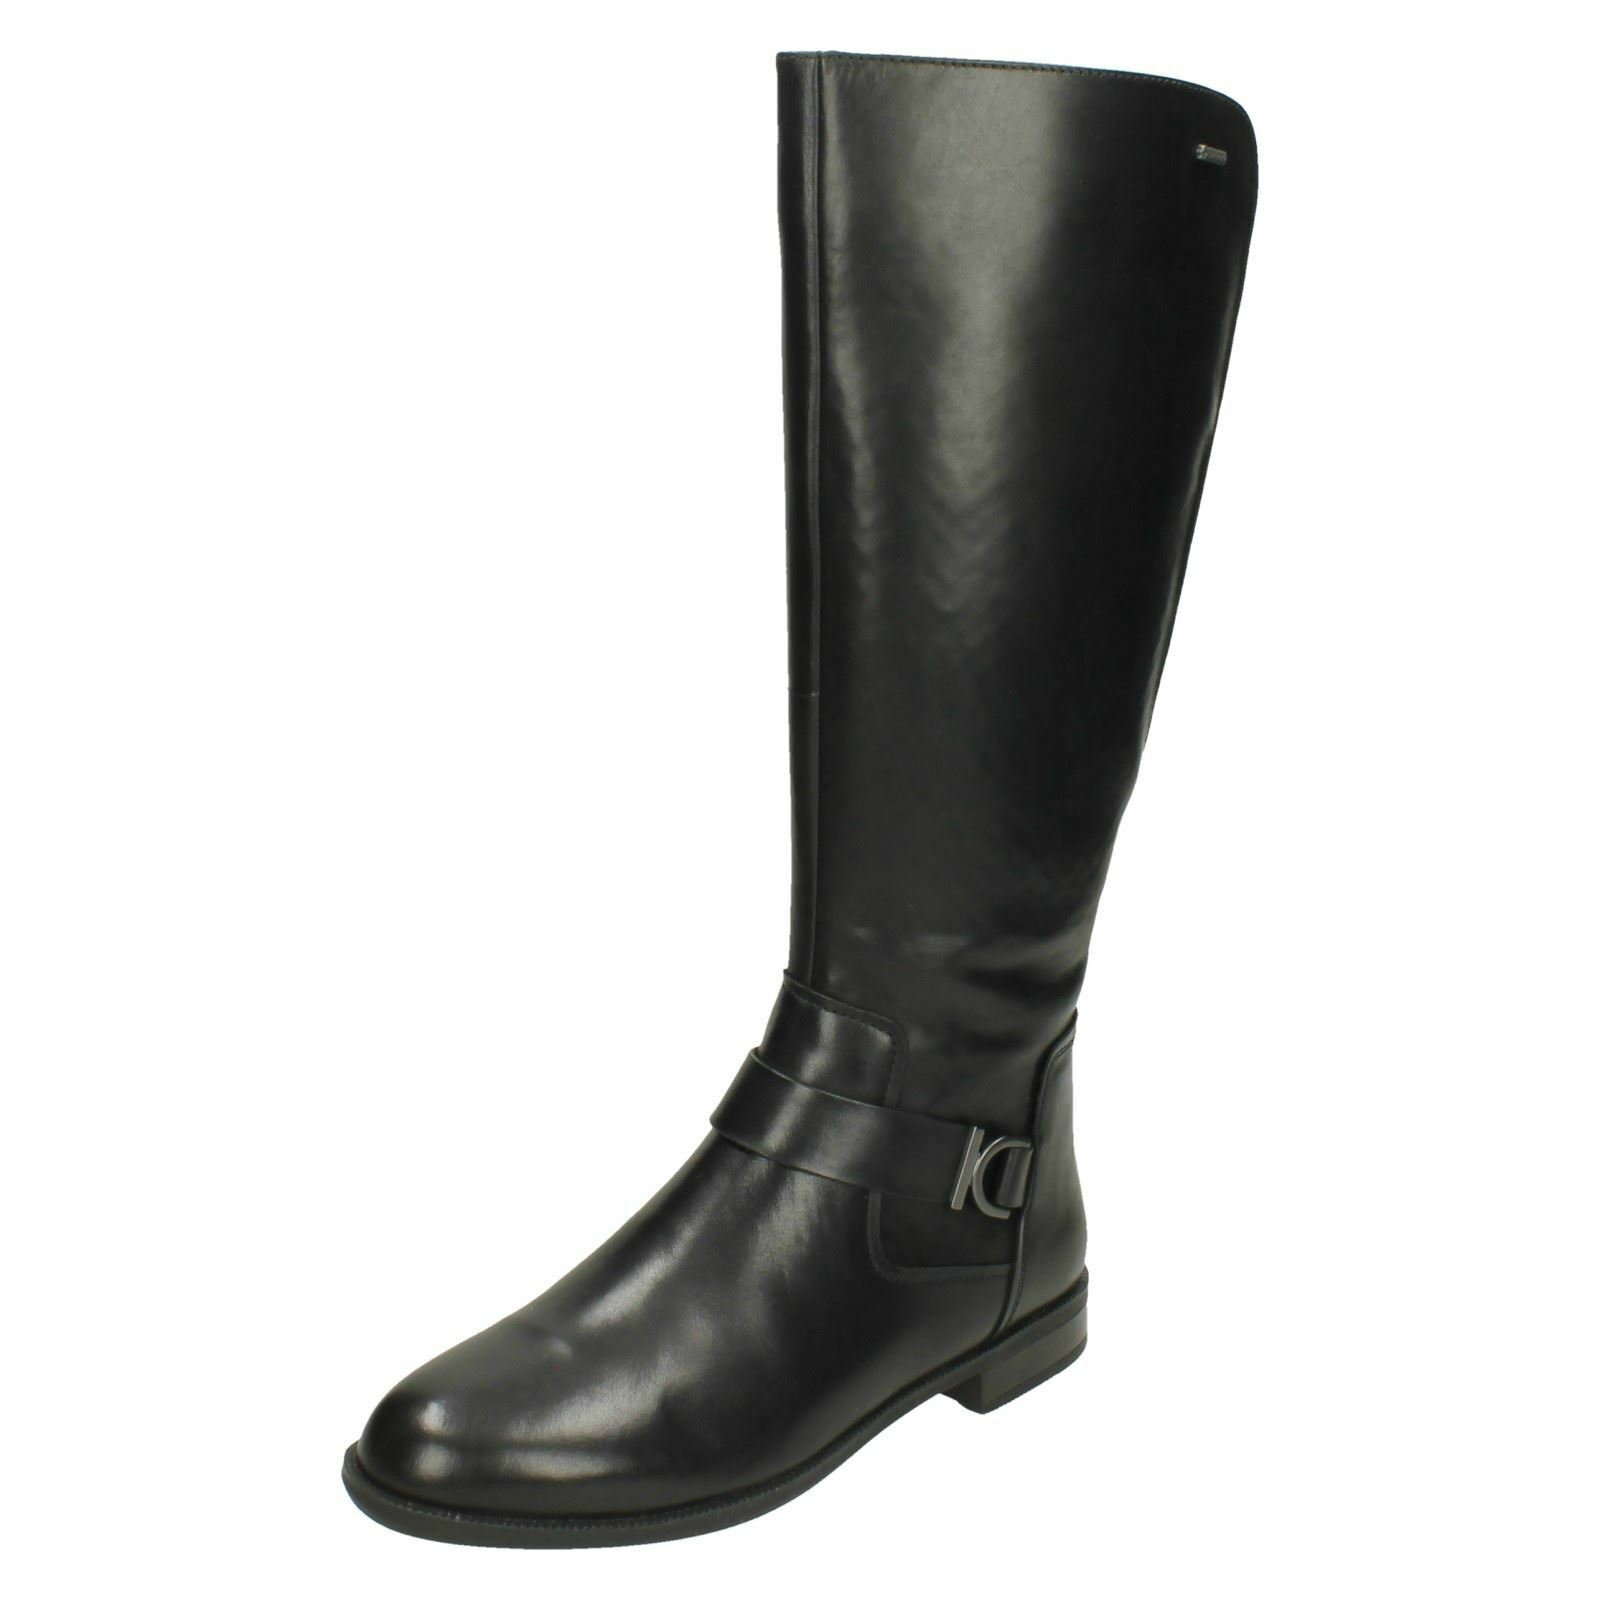 Grandes zapatos con descuento Clarks Ladies Zip Up Knee High Leather Boots - Mint Treat